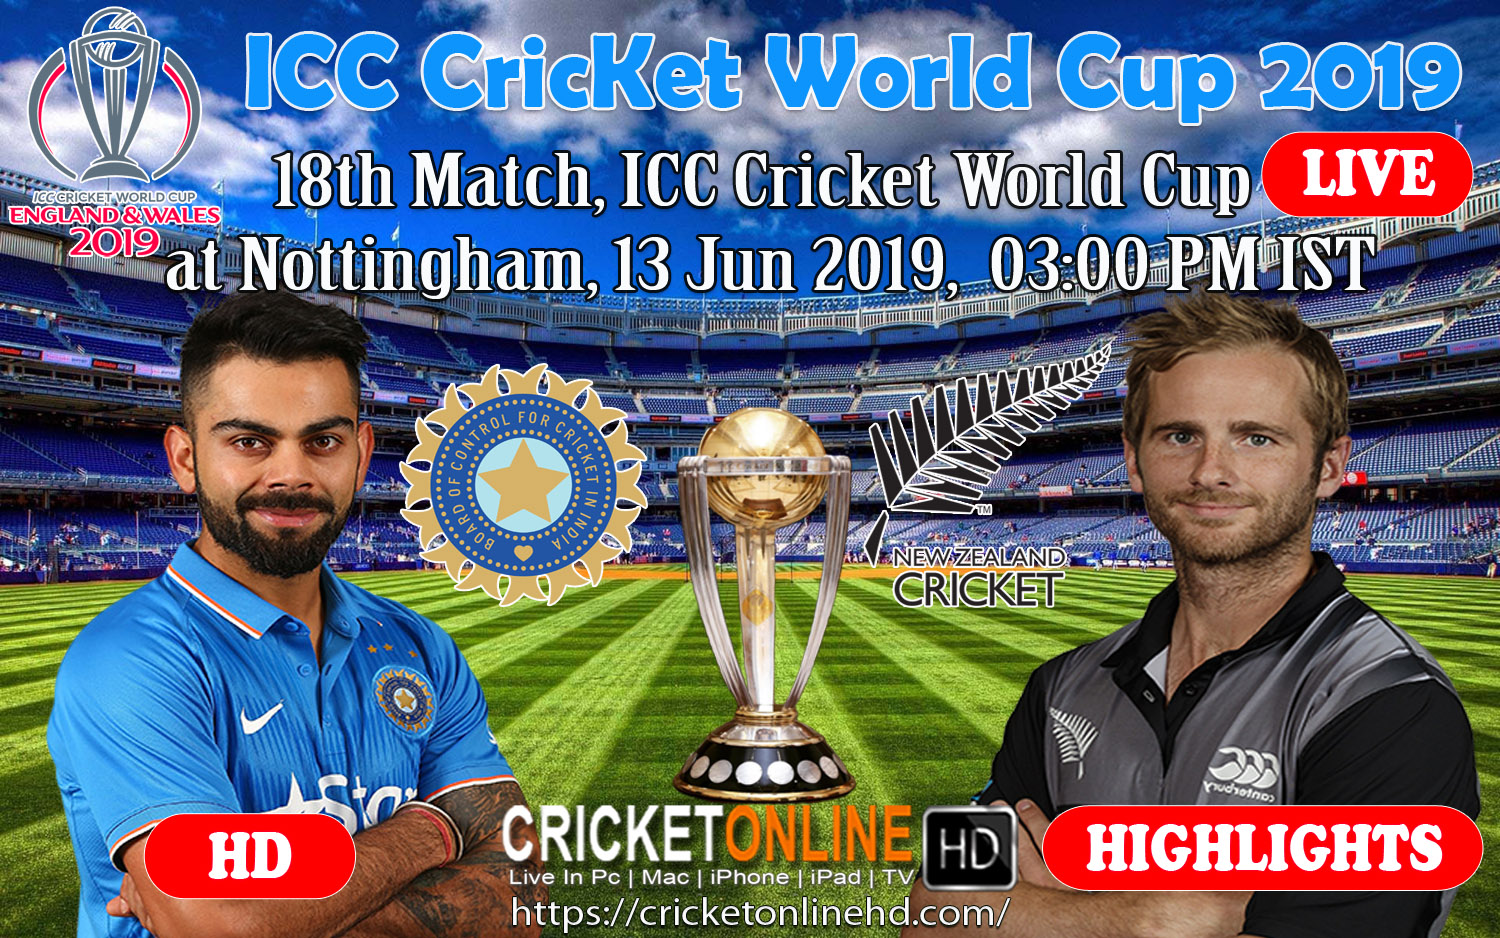 Icc World Cup 2019 Schedule 18th Match India Vs New Zealand At Nottingham, Jun 13